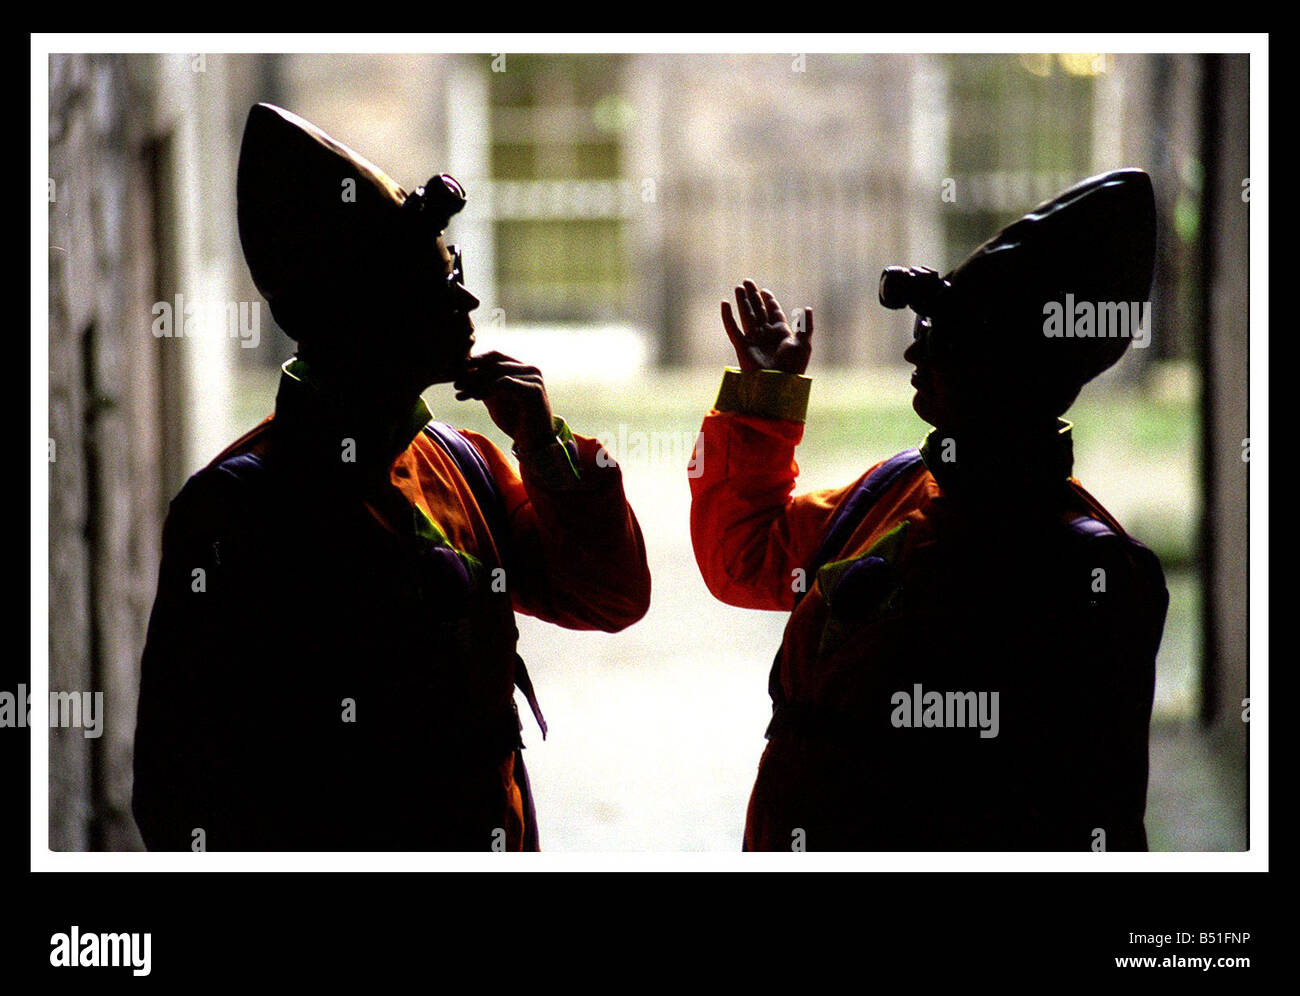 Science Festival Edinburgh December 1998 aliens Captain Zogon and Ensign Thuff - Stock Image